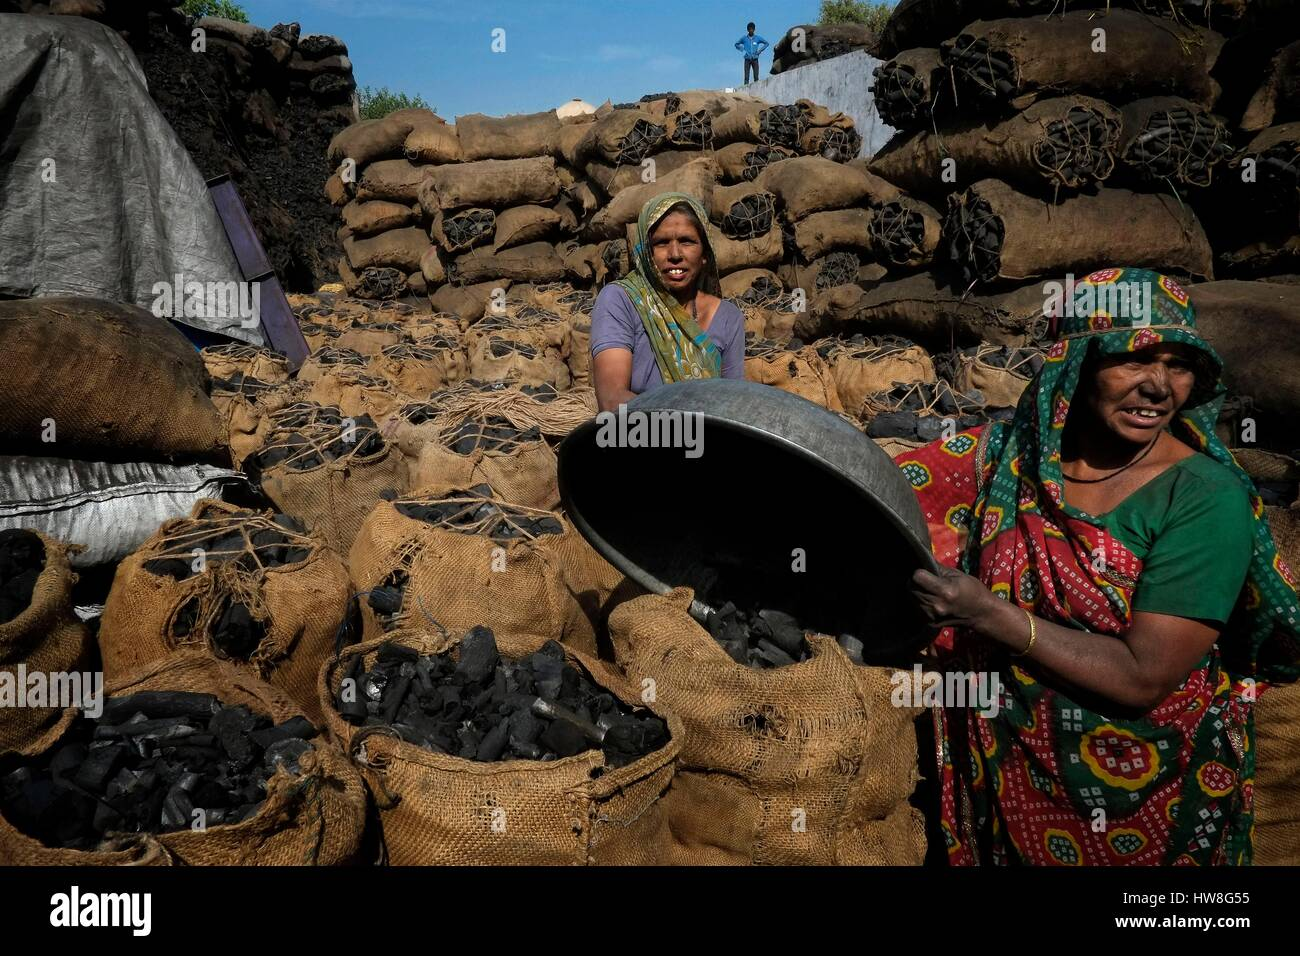 India, Gujarat State, Ahmedabad, listed as World Heritage by UNESCO, workers, mainly women, working in a coal factory - Stock Image